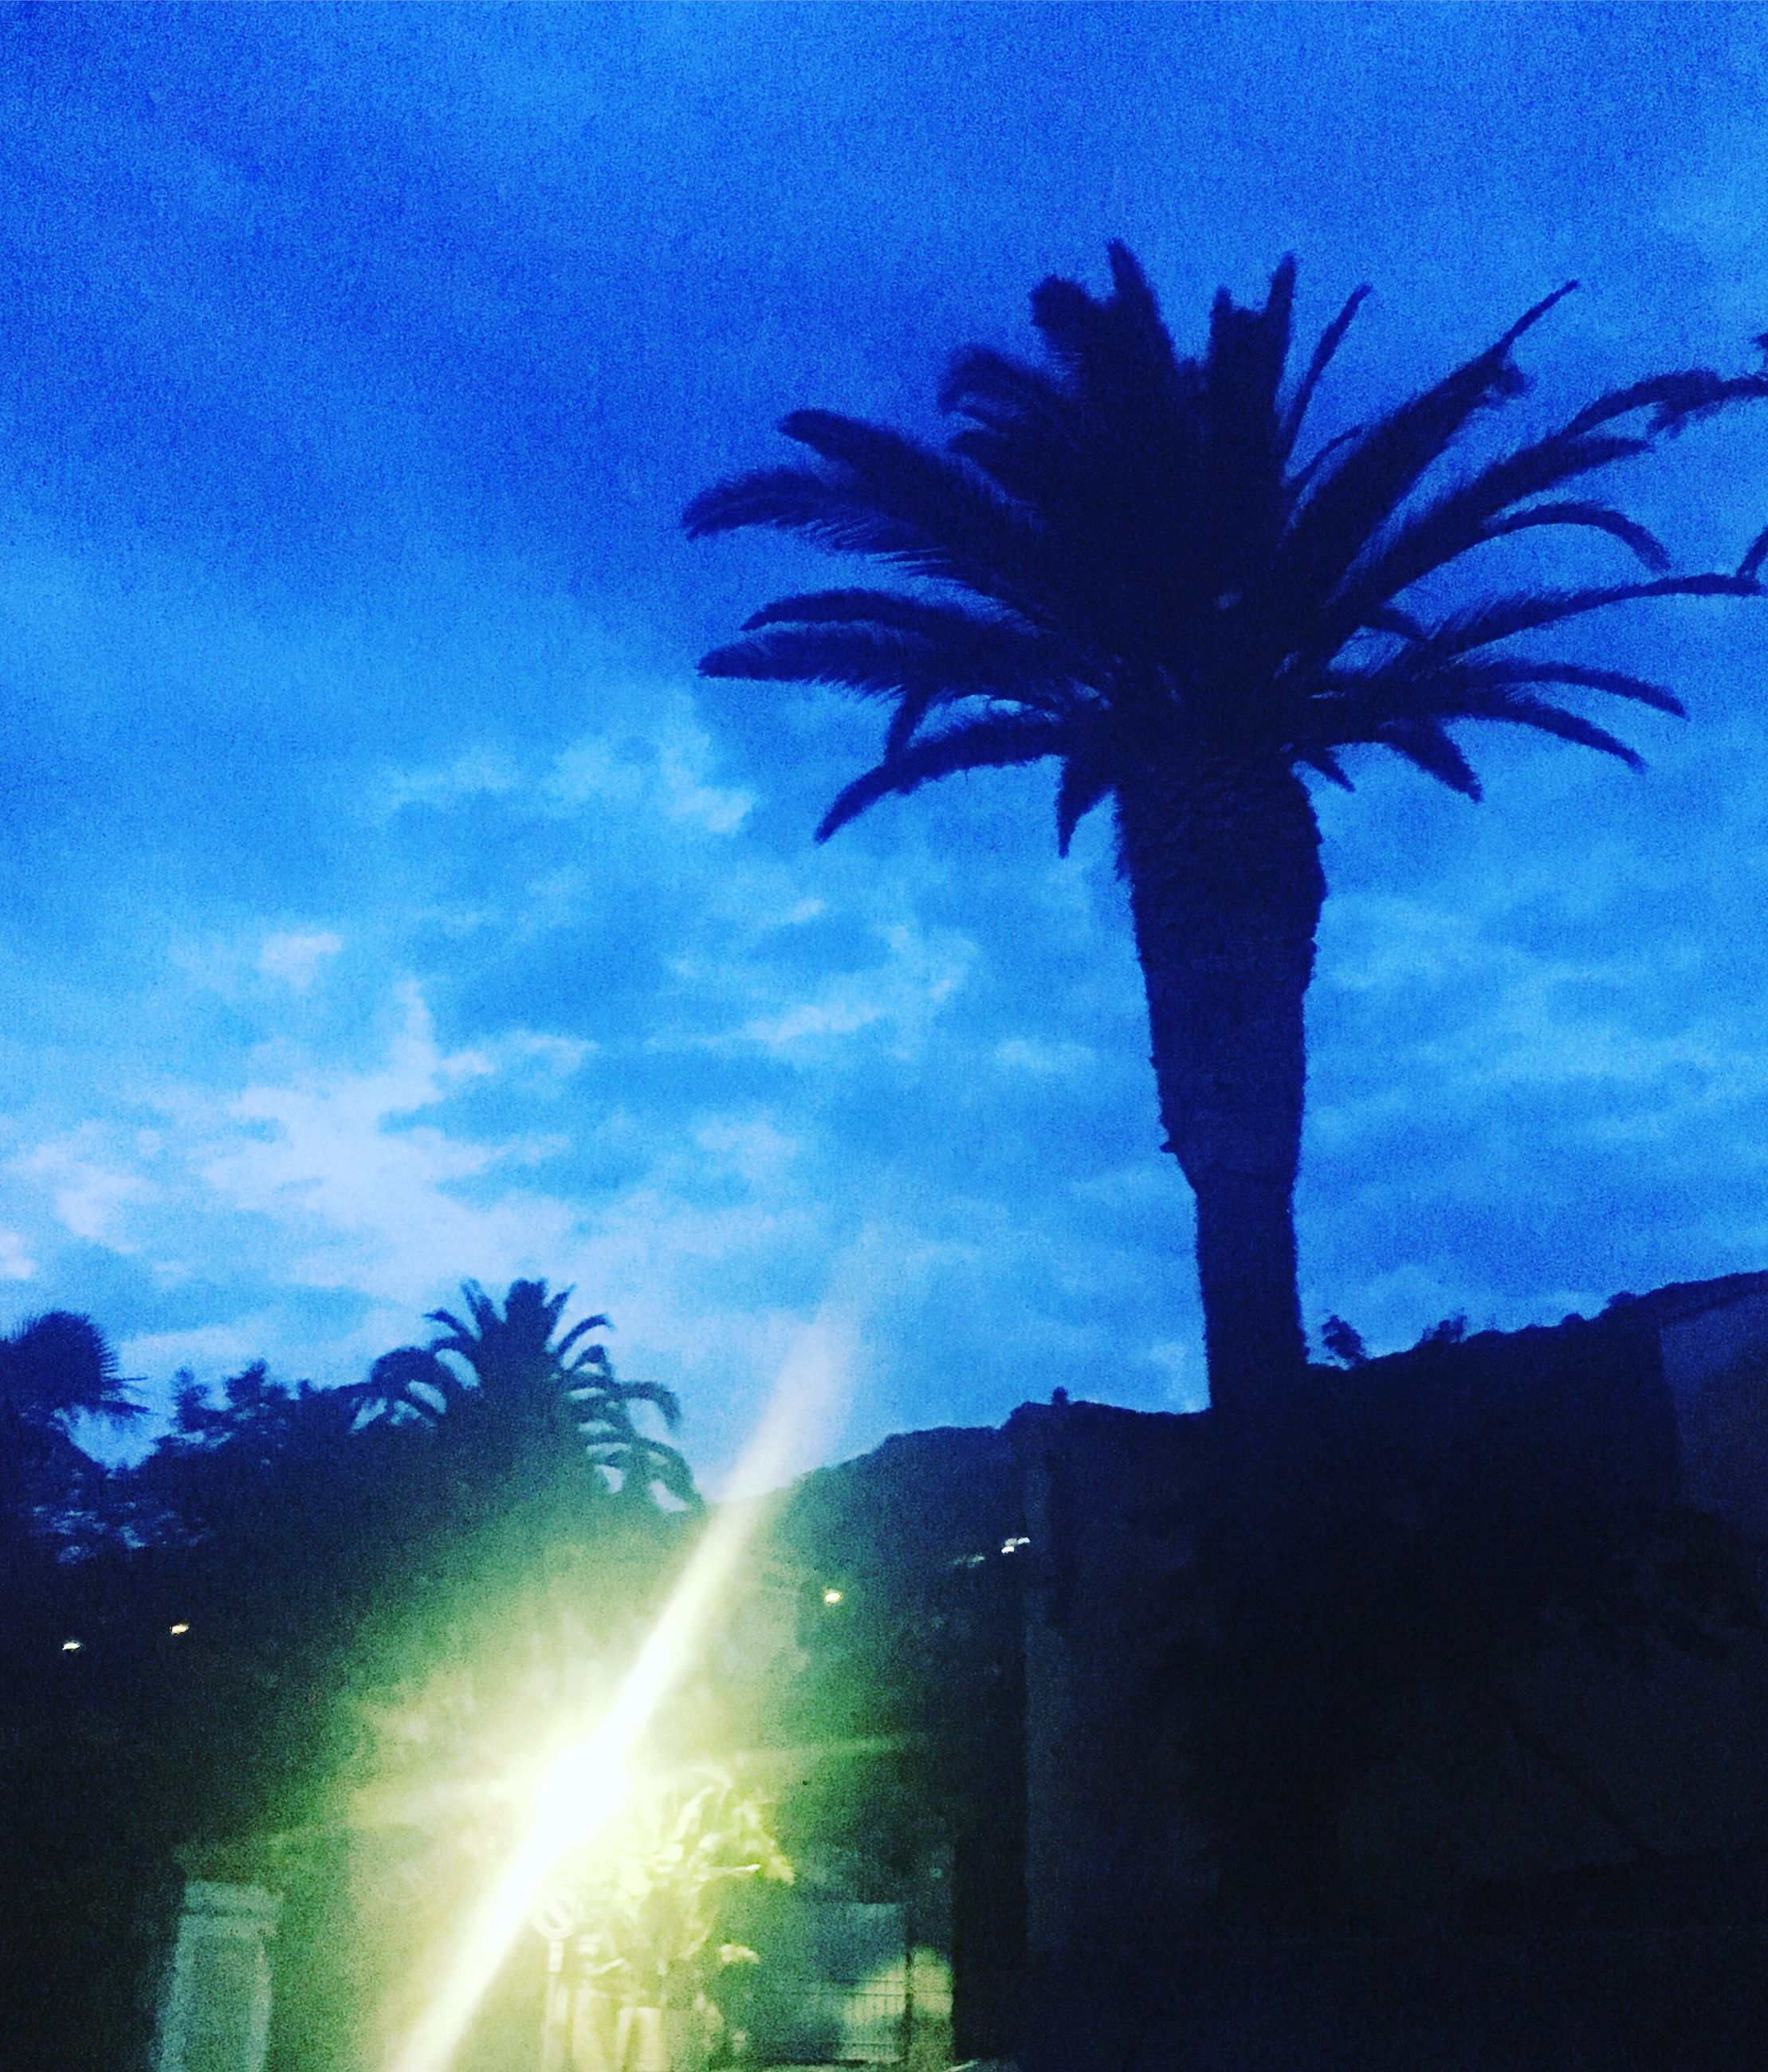 silhouette, palm tree, low angle view, sky, tree, outdoors, nature, beauty in nature, no people, sunset, night